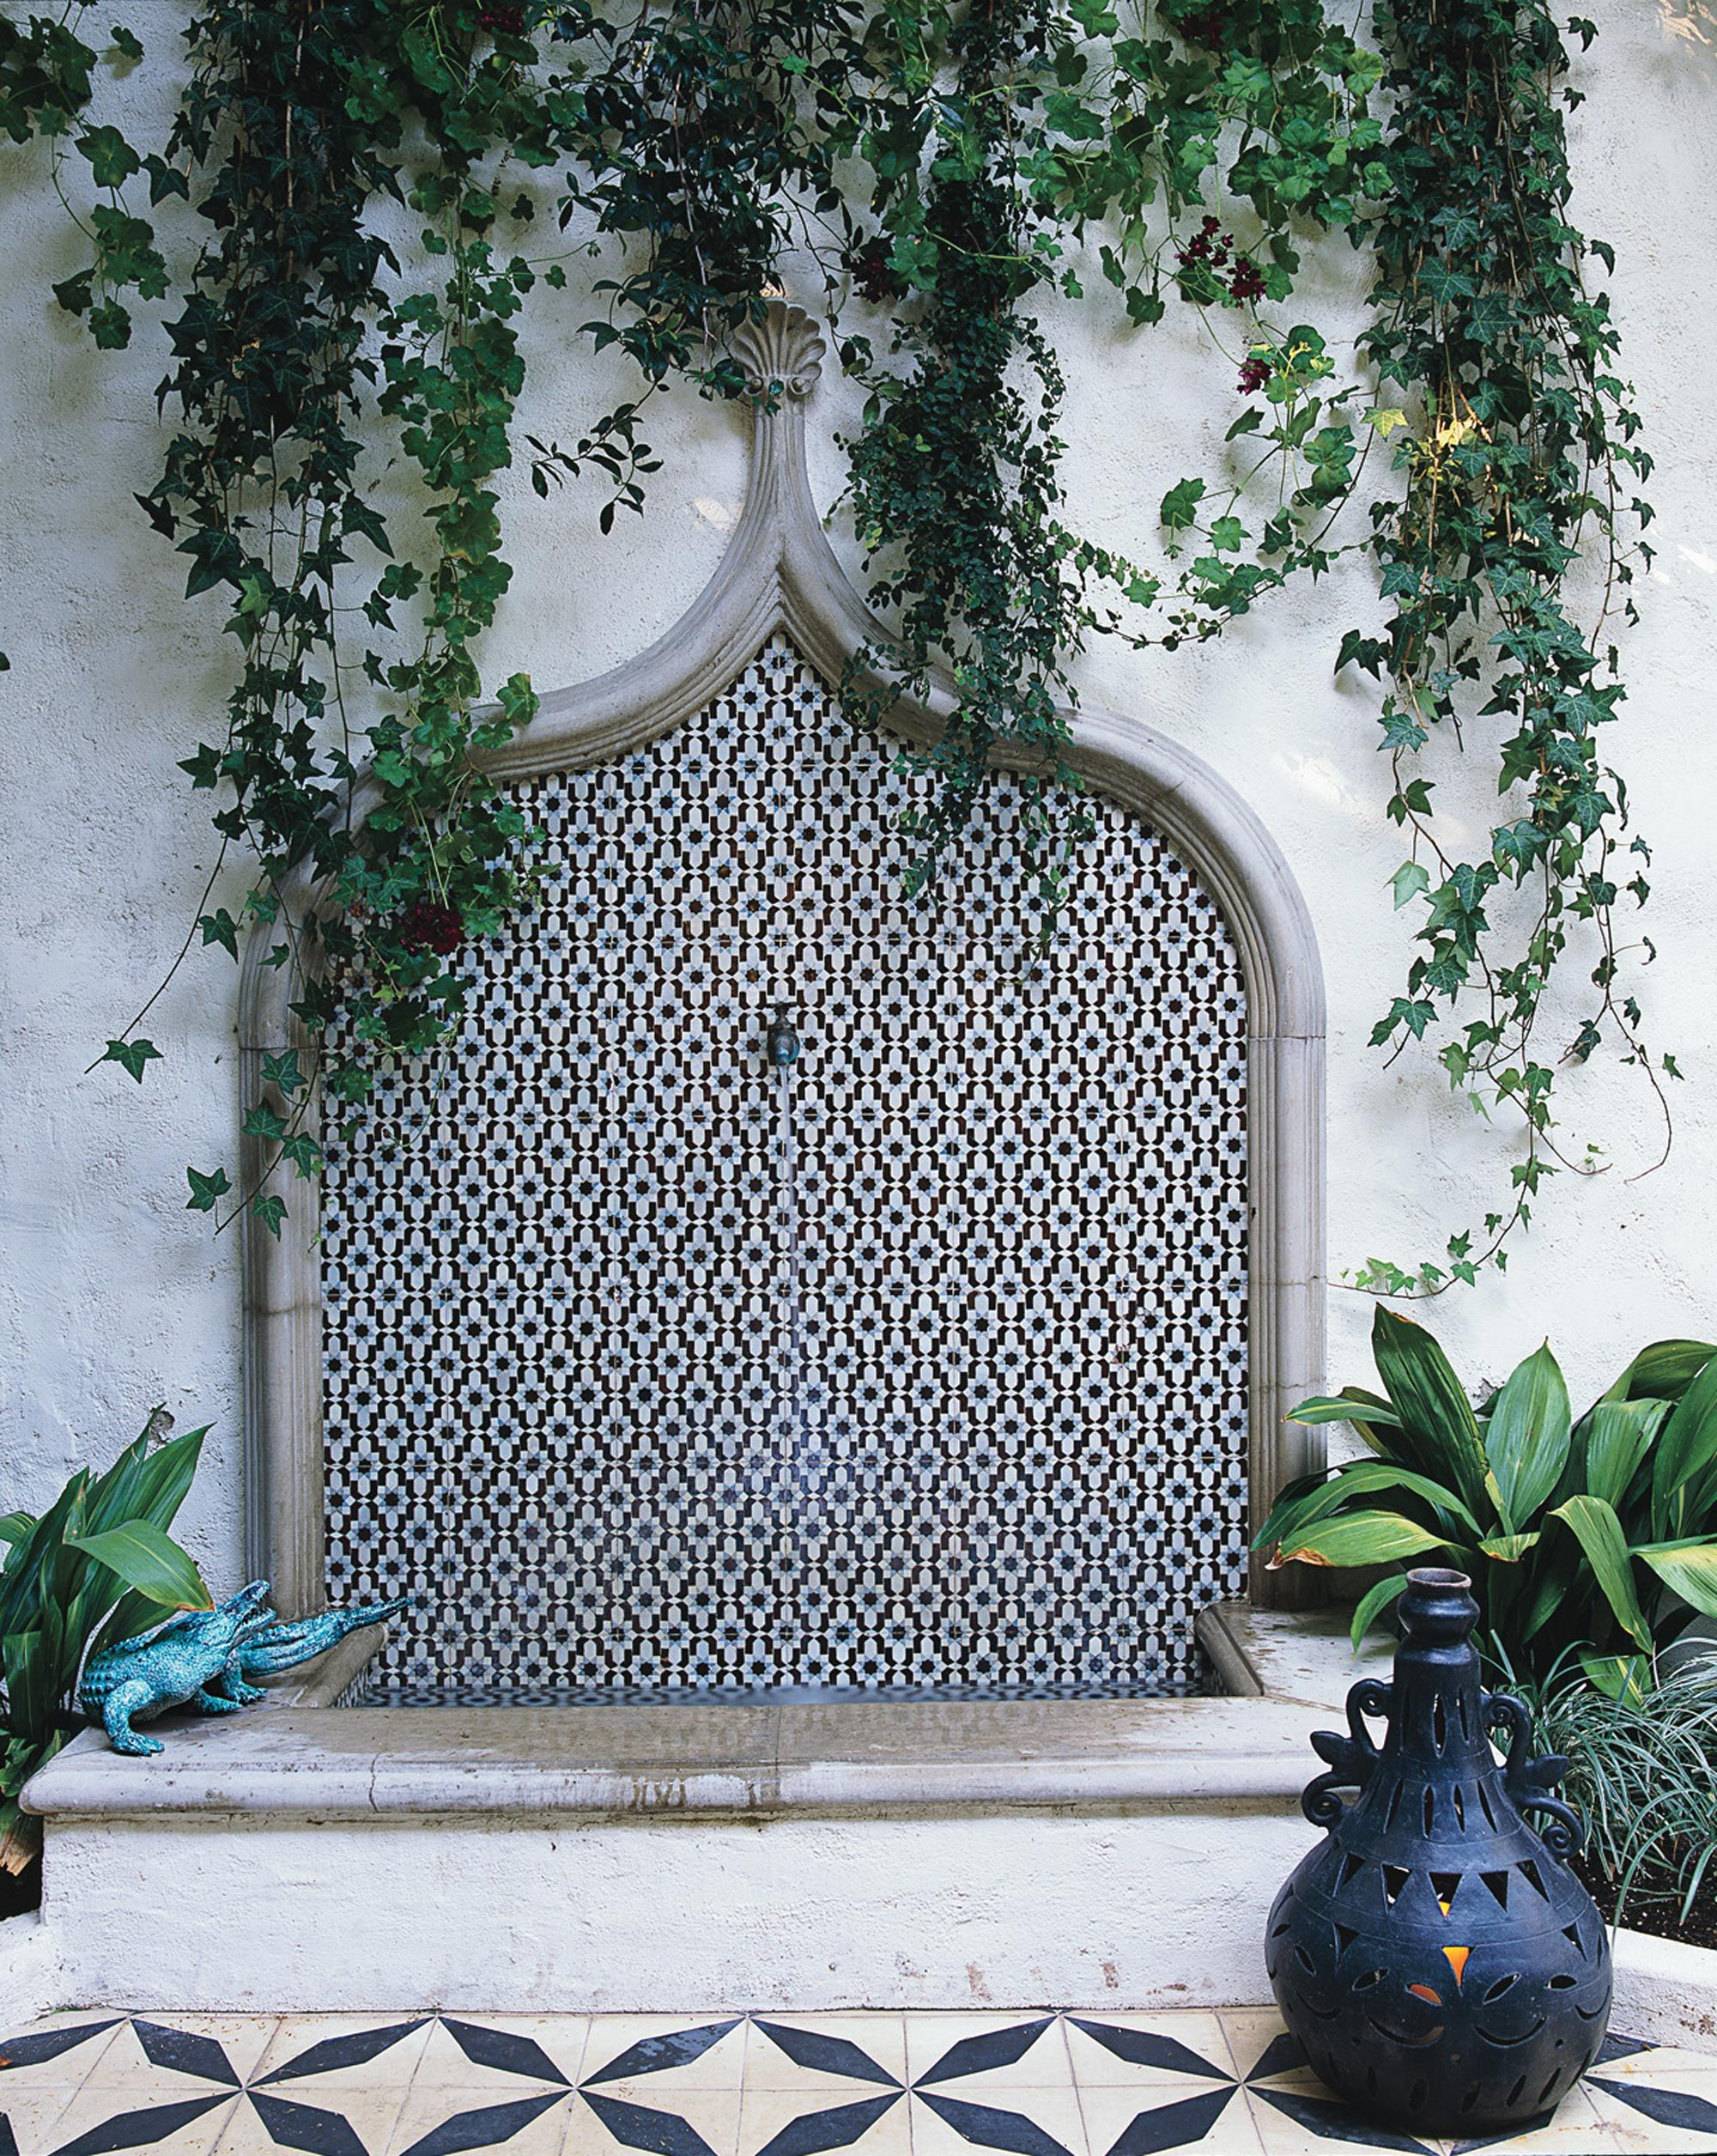 The Custom Mosaic Fountain On The Patio Features Tiles By